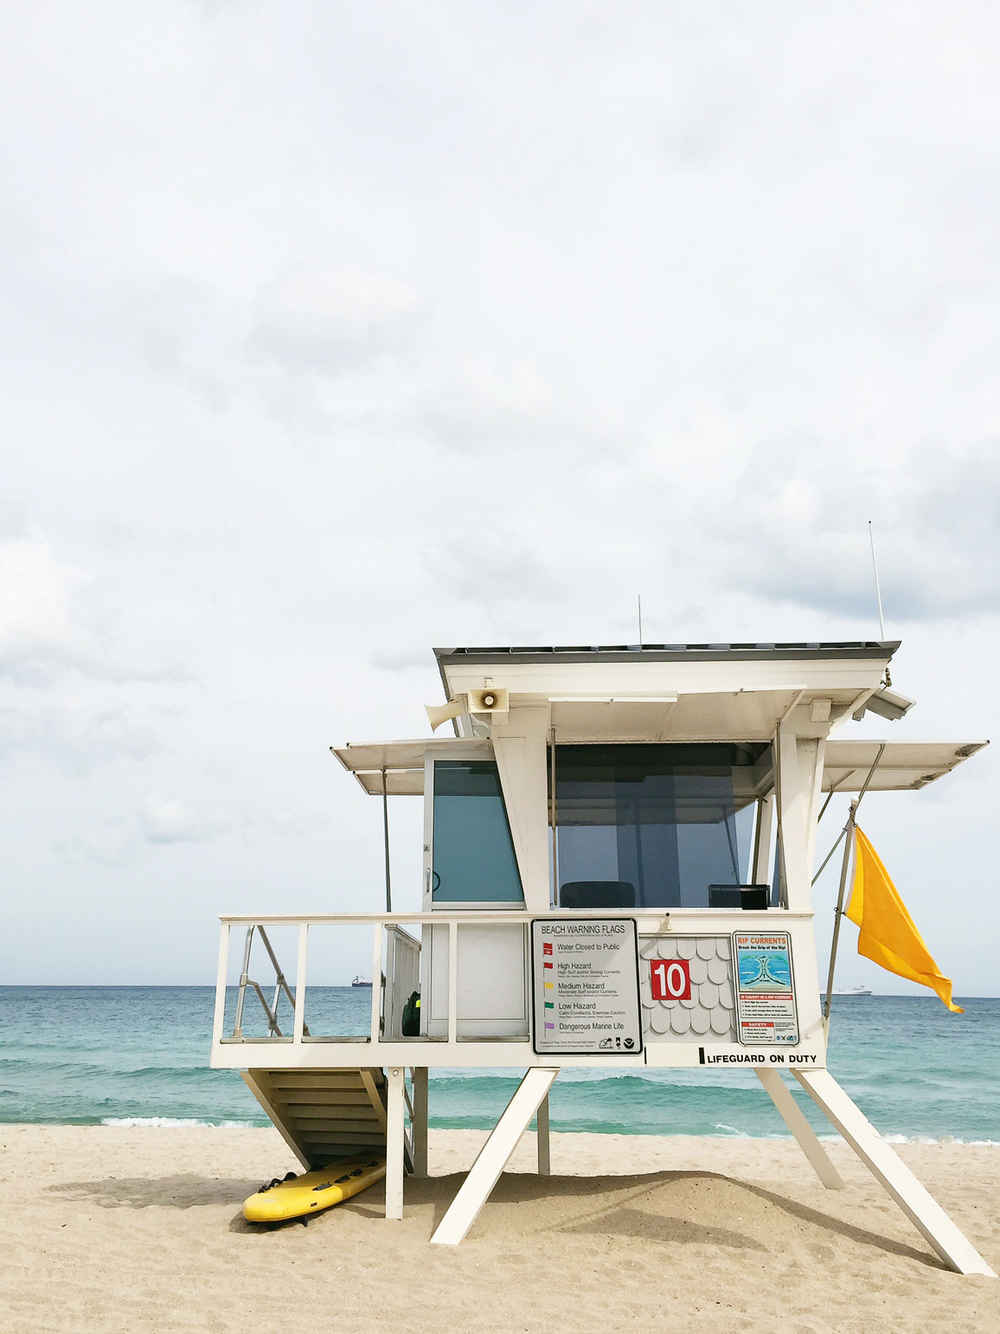 Lifeguard Station Fort Lauderdale Beach Florida